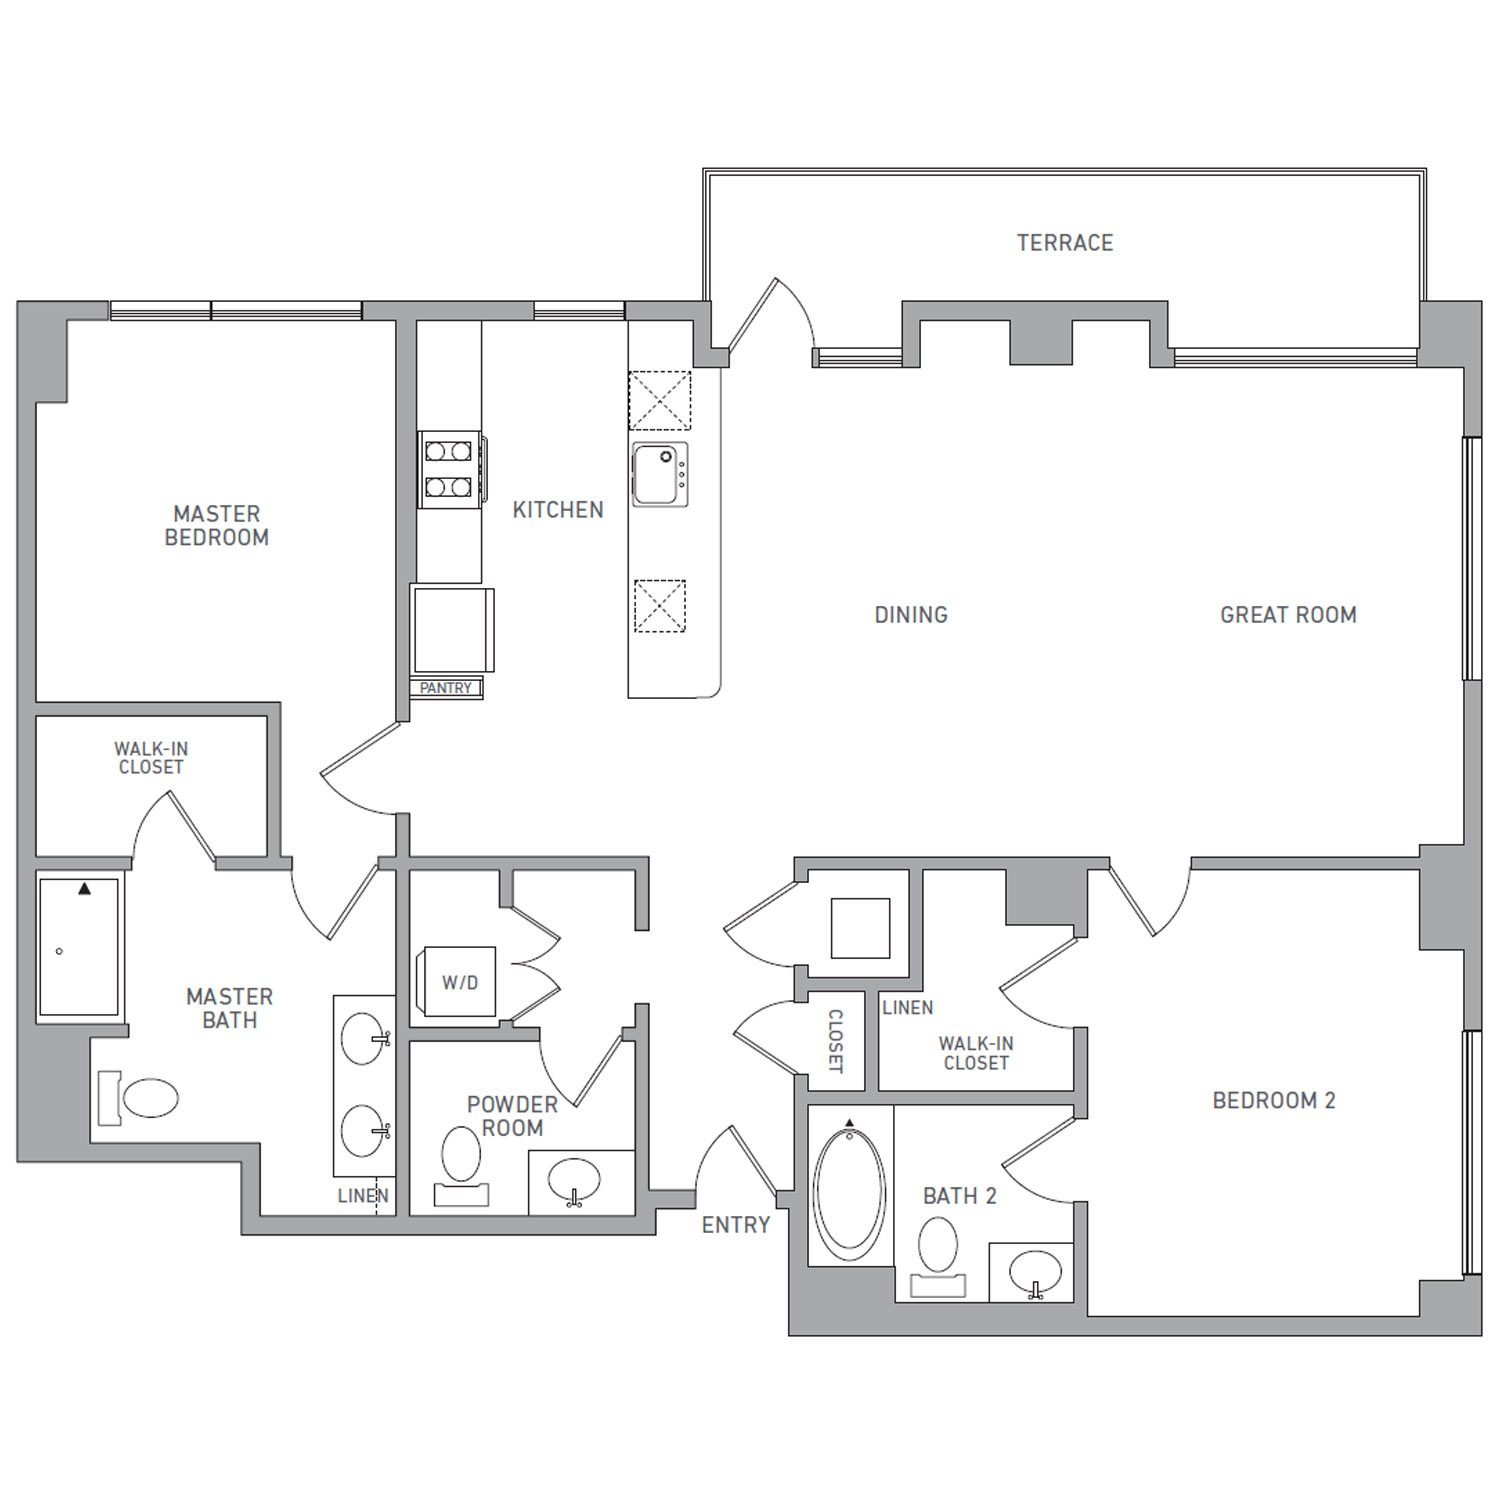 P H 200 floor plan diagram. Penthouse apartment with two bedrooms, two and a half bathrooms, an open kitchen dining and living area, a terrace, and a washer dryer.